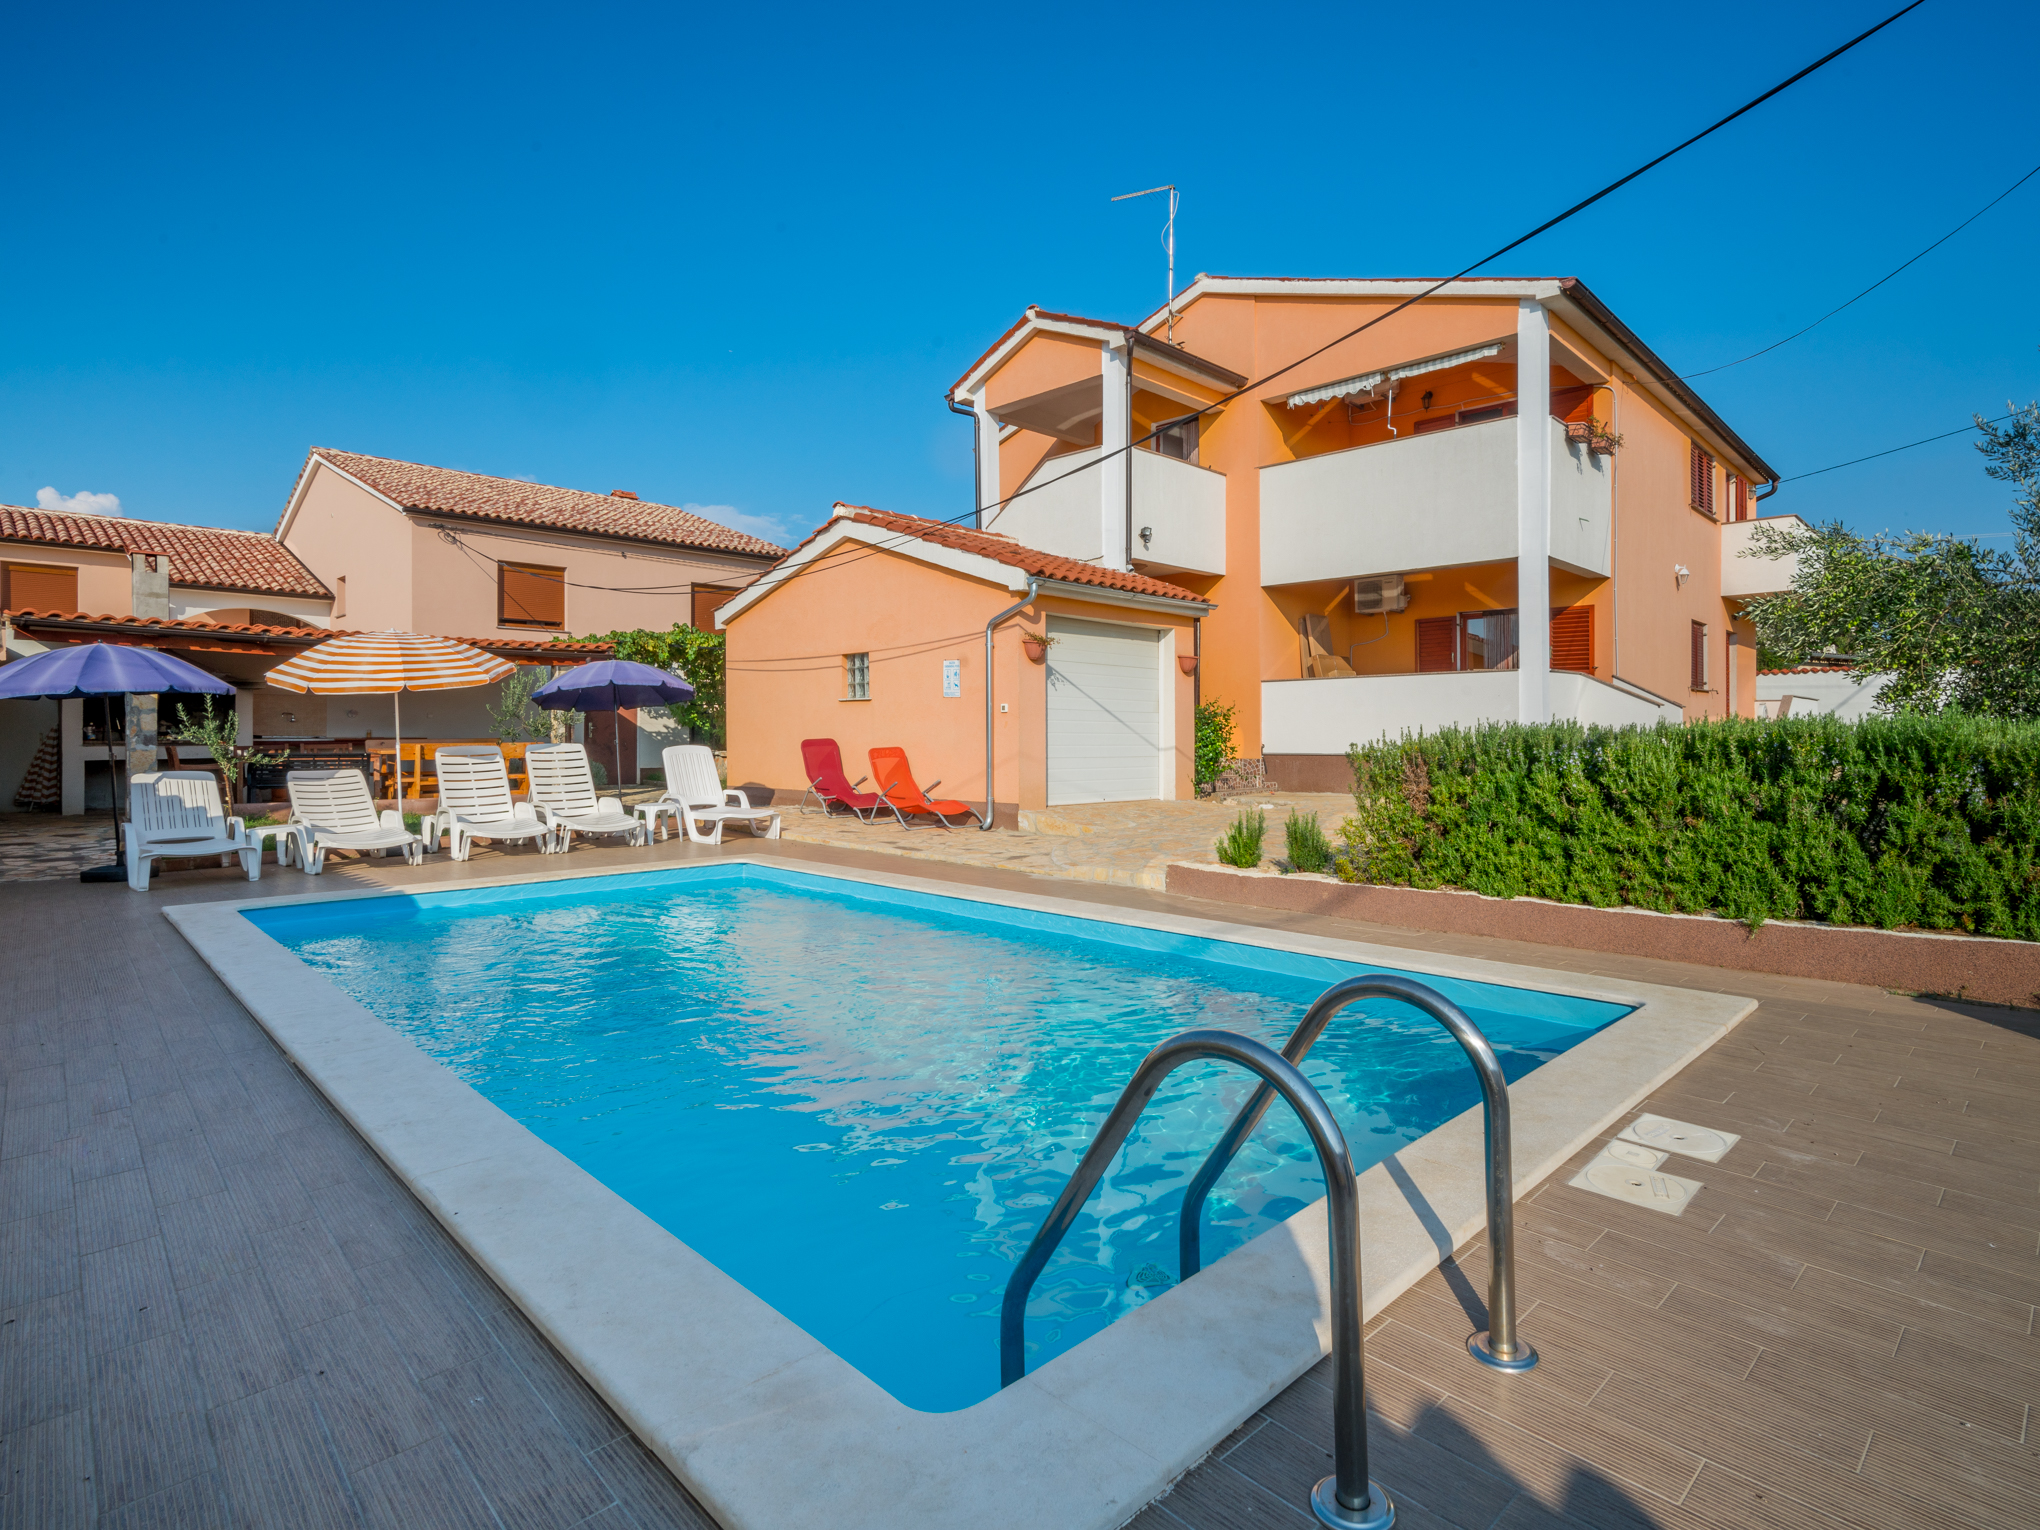 Ferienhaus Mit Pool Kroatien Pula Vacation House Villa Nina In Pula Galižana Croatia Hr2590 102 1